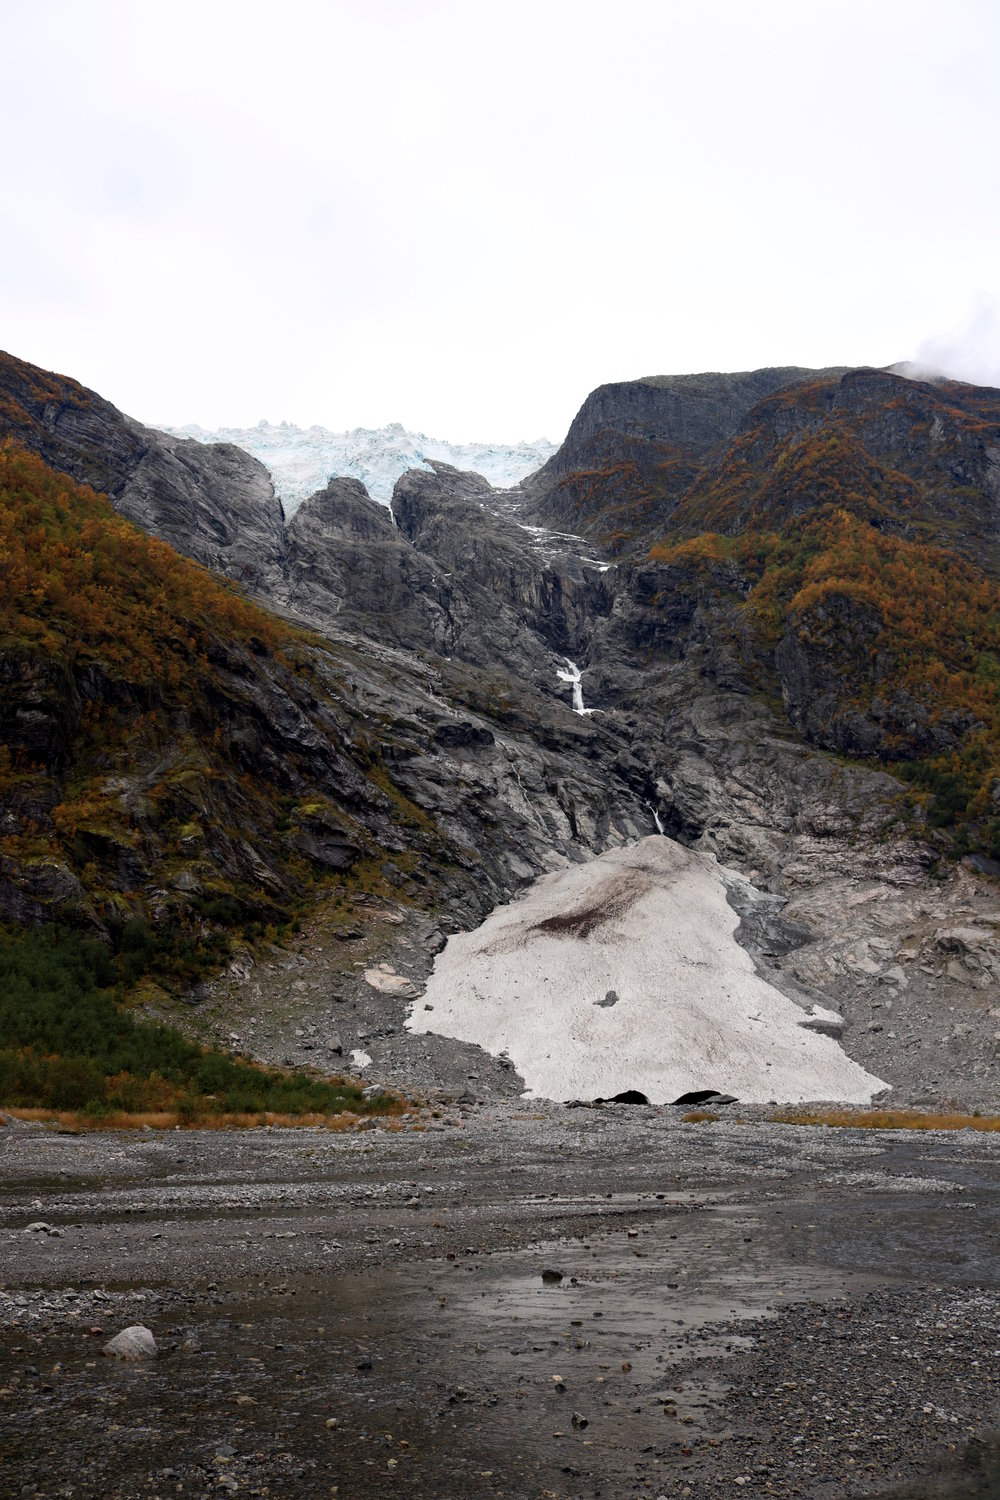 Supphellebreen Gletscher 2015